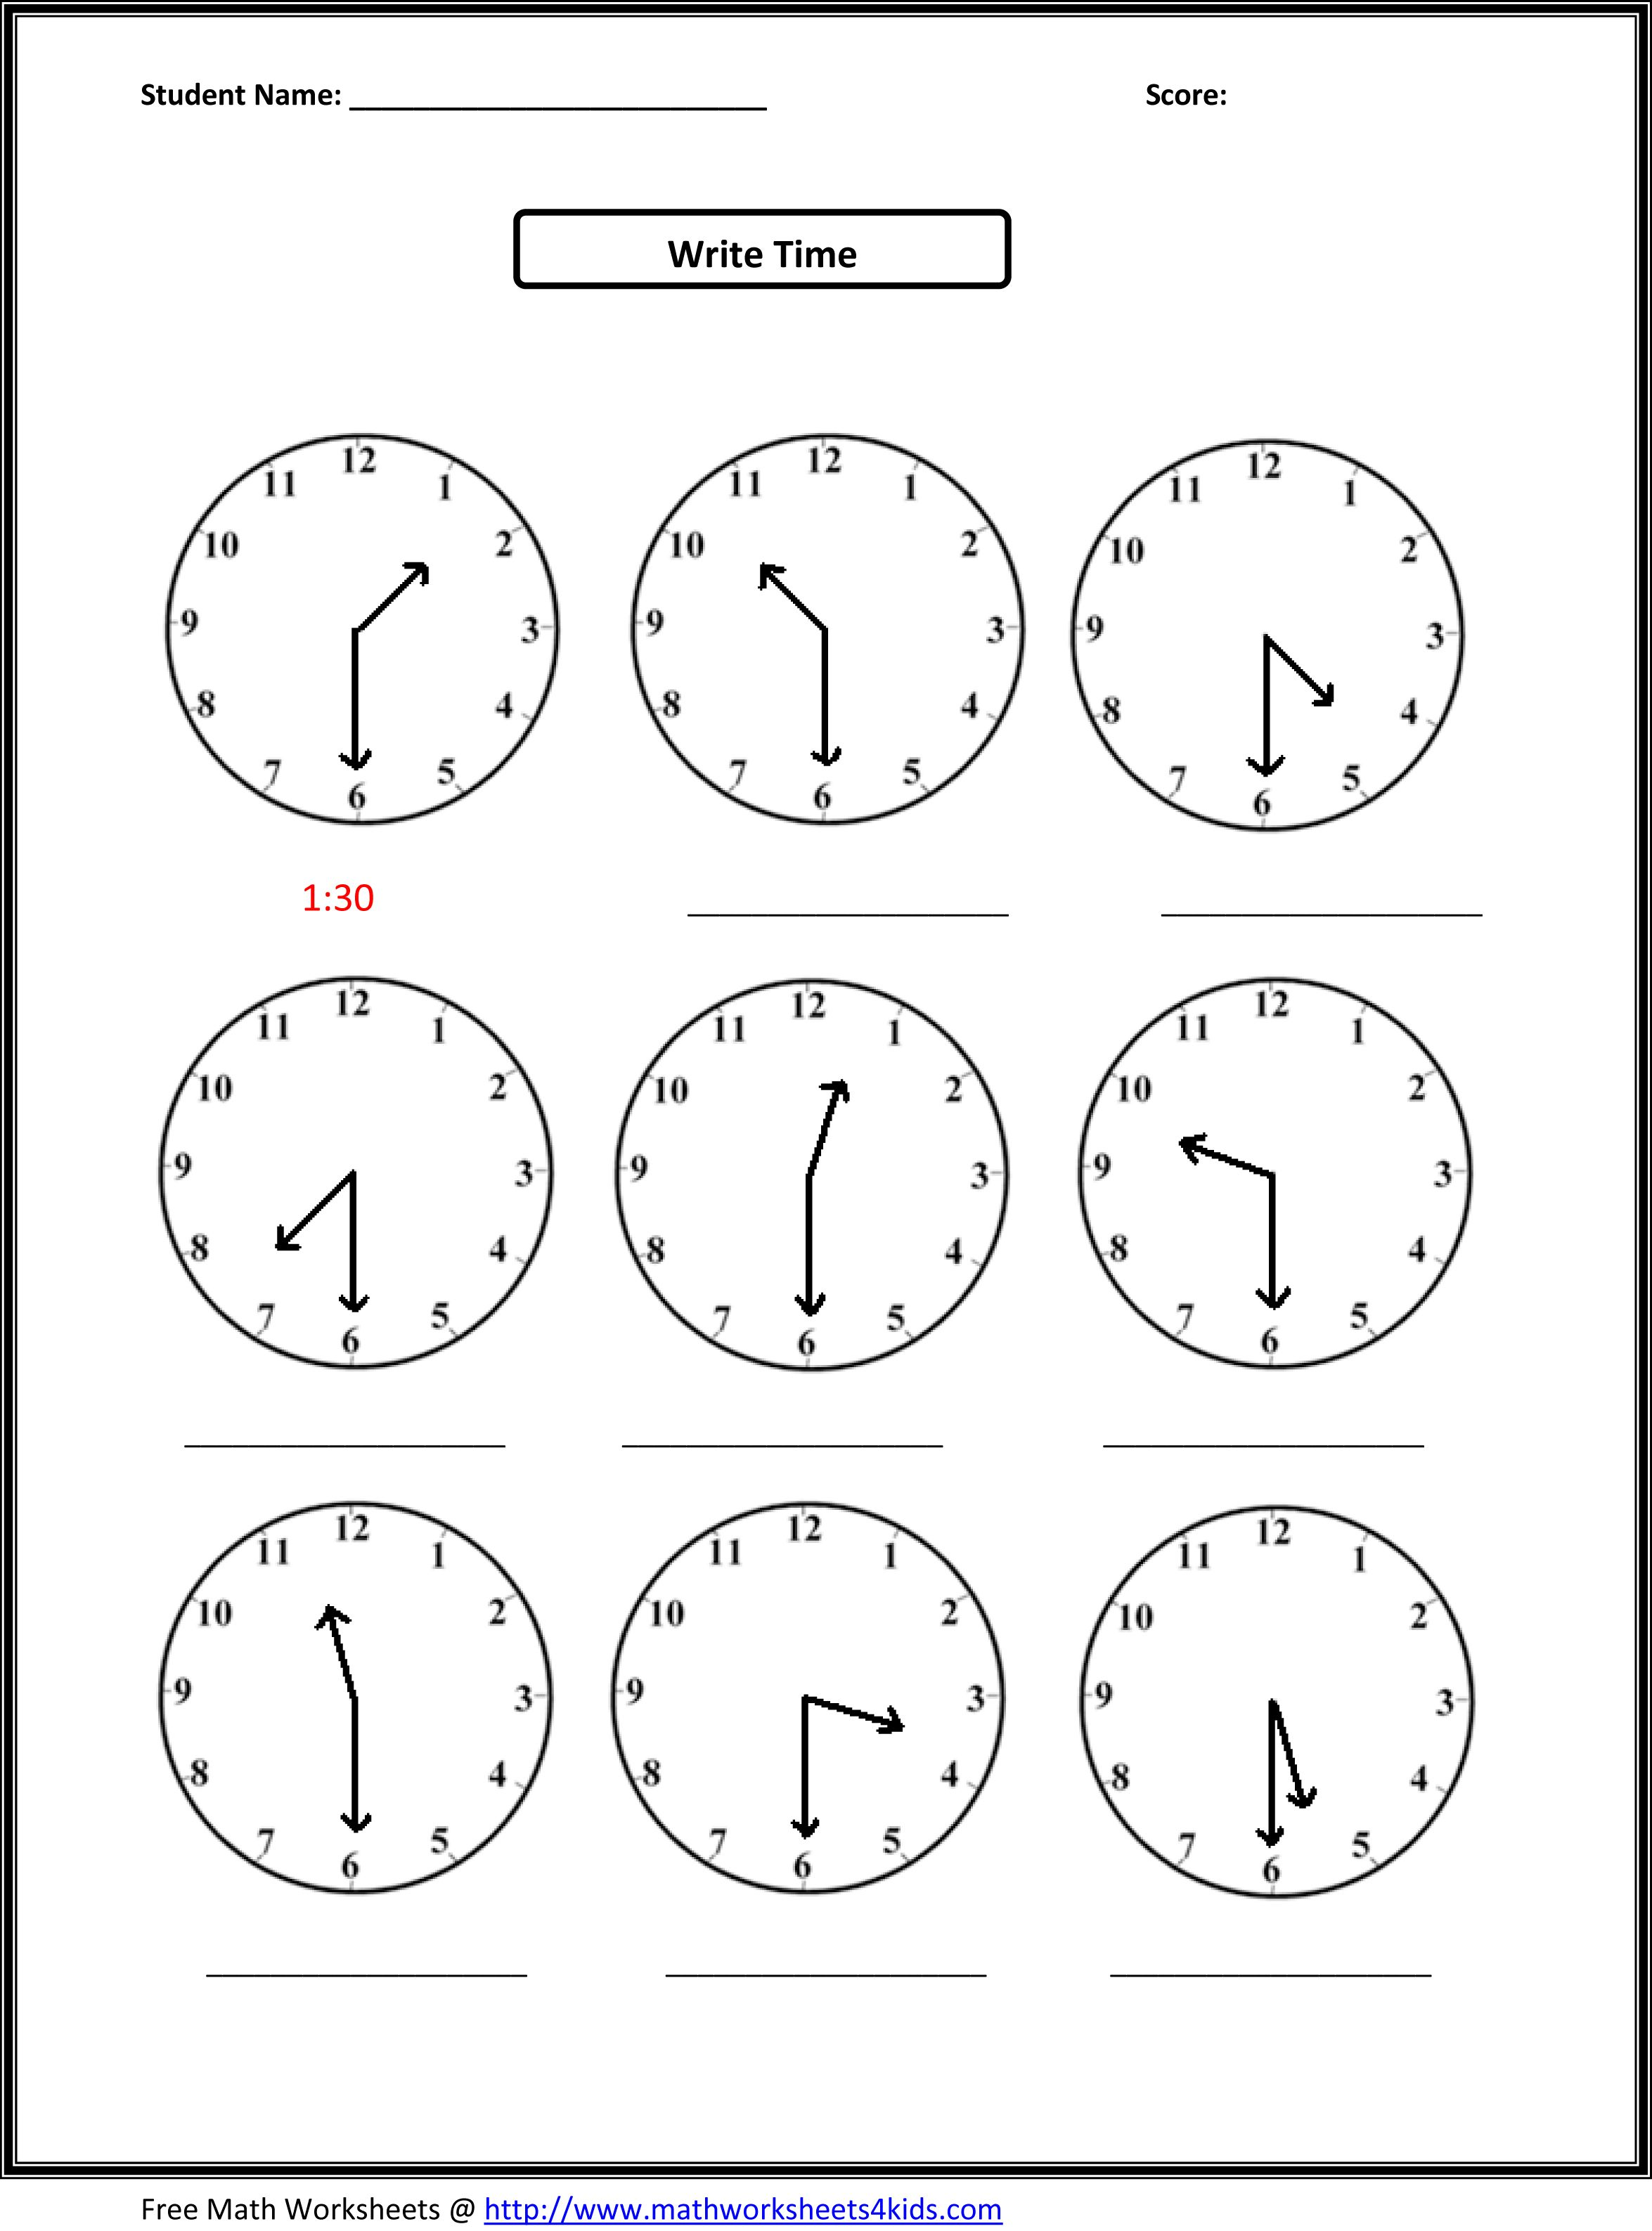 Proatmealus  Scenic Worksheet On Time For Grade   Reocurent With Lovable Free Printable Telling Time Worksheets Nd Grade  Reocurent With Comely Worksheet Of Maths For Class  Also Adverbs Of Manner Worksheets Exercises In Addition Maths Area And Perimeter Worksheets And Grammar Nouns Worksheet As Well As Maths Worksheet For Grade  Additionally Drop The E Add Ing Worksheets From Reocurentcom With Proatmealus  Lovable Worksheet On Time For Grade   Reocurent With Comely Free Printable Telling Time Worksheets Nd Grade  Reocurent And Scenic Worksheet Of Maths For Class  Also Adverbs Of Manner Worksheets Exercises In Addition Maths Area And Perimeter Worksheets From Reocurentcom